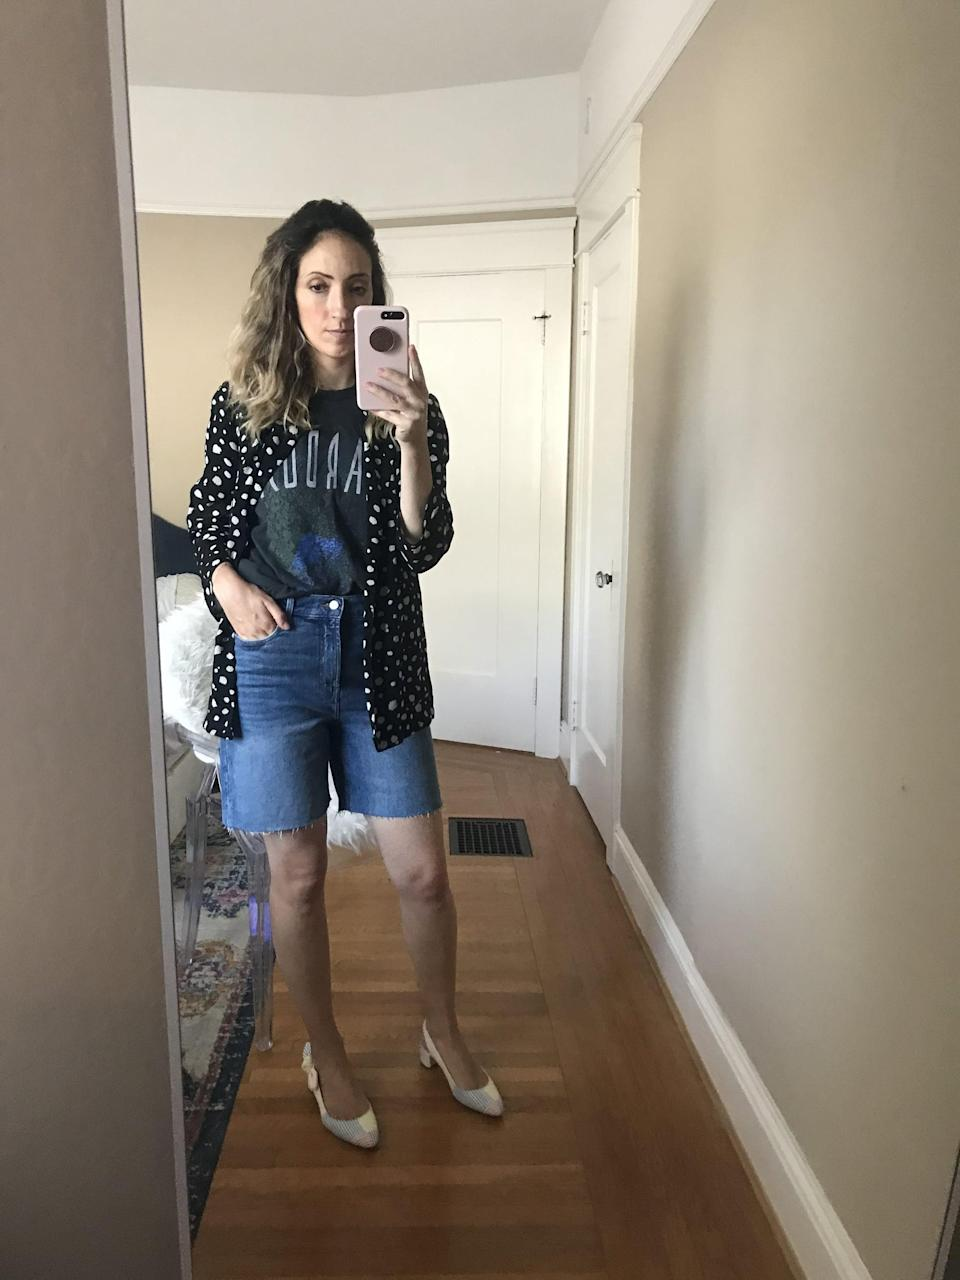 """<p><strong>The item:</strong> <span>High-Waisted Relaxed Cut-Off Jean Shorts</span> (Sold Out) </p> <p><strong>What our editor said:</strong> """"For starters, the fabric is soft along the inner thigh - I'm talking NO CHAFE, even on walks - and the shorts are stretchy without looking that way. The wash is slightly distressed, which makes me want to wear them with casual T-shirts and tailored blazers."""" - RB </p> <p>If you want to read more, here is the <a href=""""https://www.popsugar.com/fashion/old-navy-denim-bermuda-shorts-47578500"""" class=""""link rapid-noclick-resp"""" rel=""""nofollow noopener"""" target=""""_blank"""" data-ylk=""""slk:complete review"""">complete review</a>.</p>"""